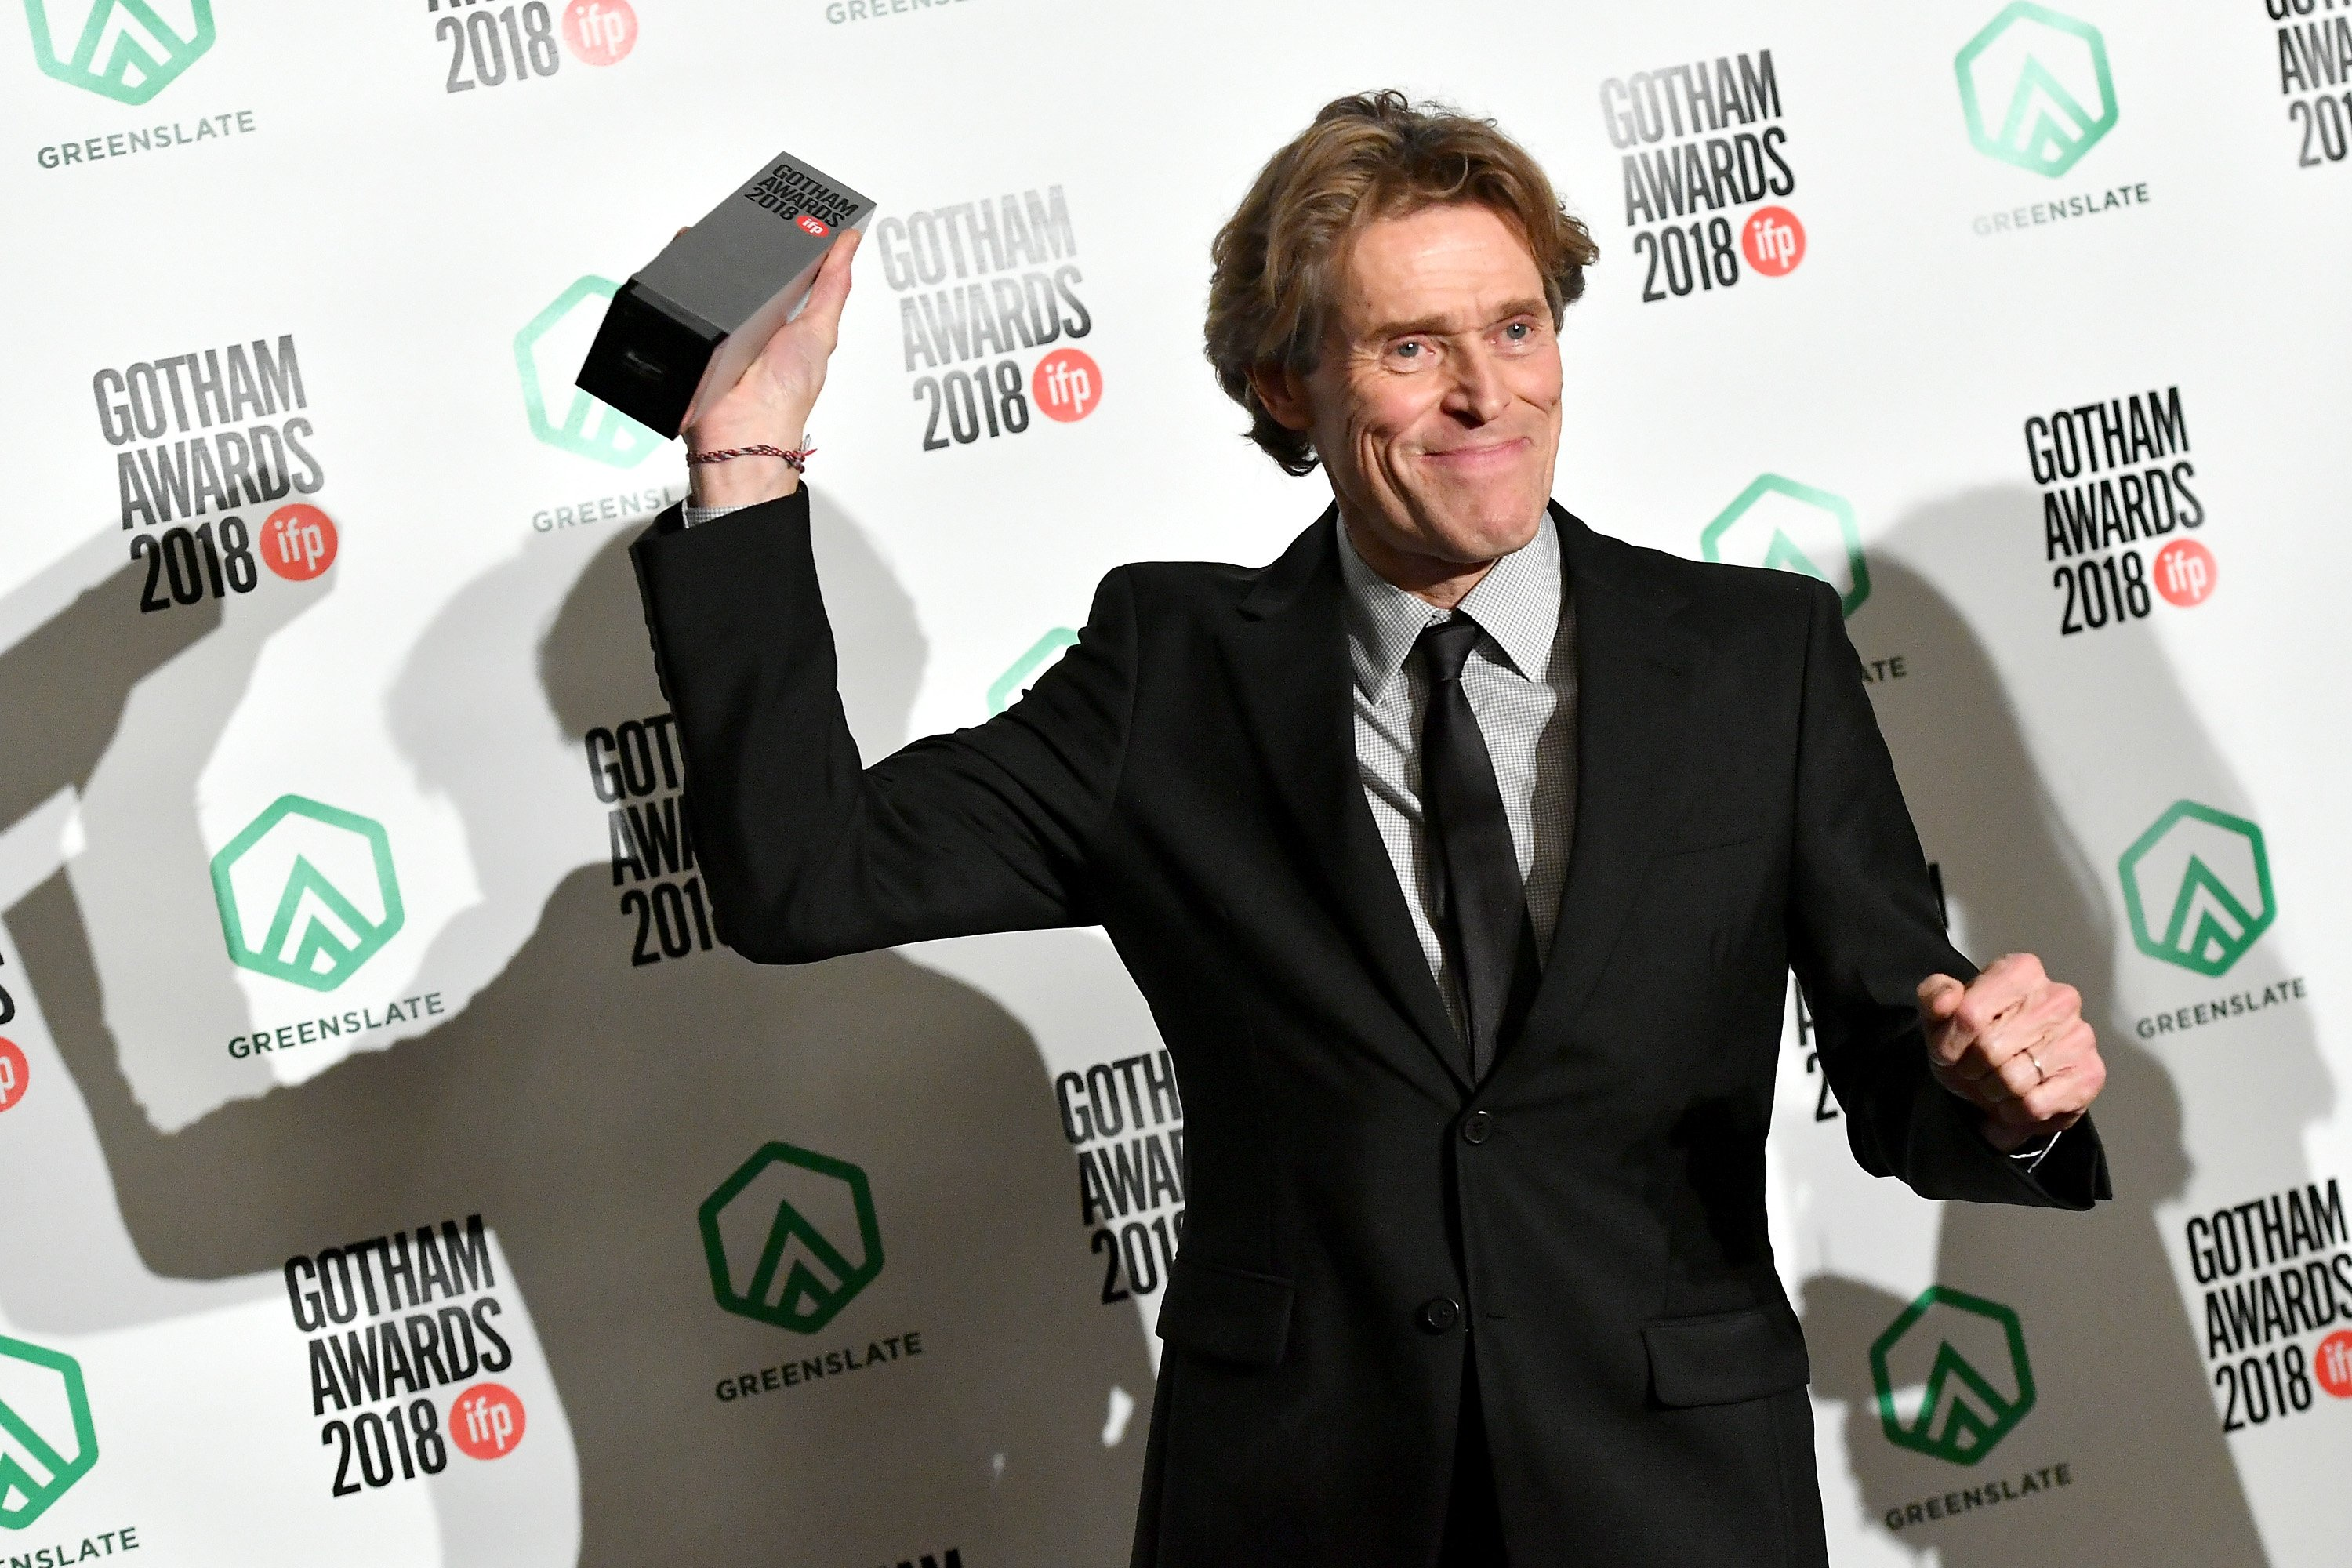 Willem Dafoe backstage in the GreenSlate Greenroom during IFP's 28th Annual Gotham Independent Film Awards at Cipriani, Wall Street on November 26, 2018 in New York City.